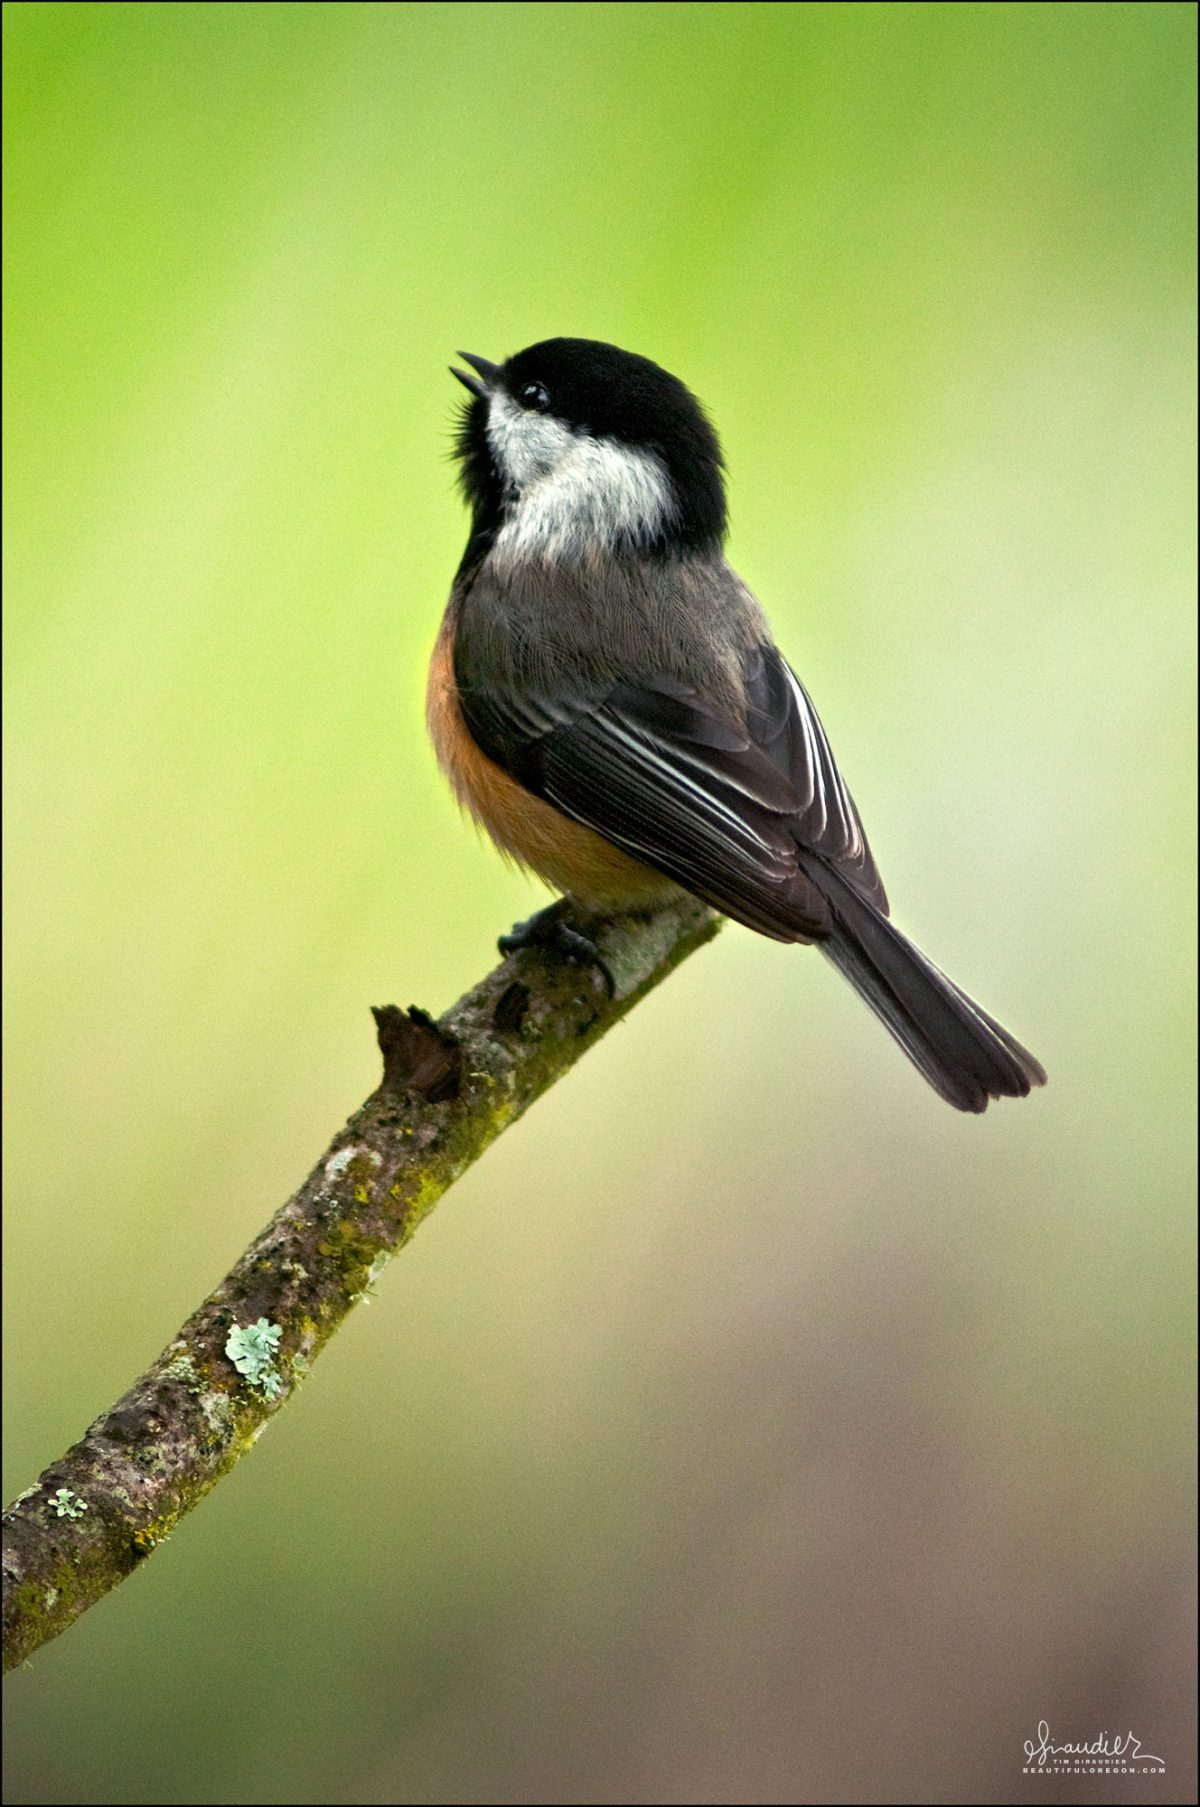 atricapillus) bird watching in Oregon and Pacific Northwest